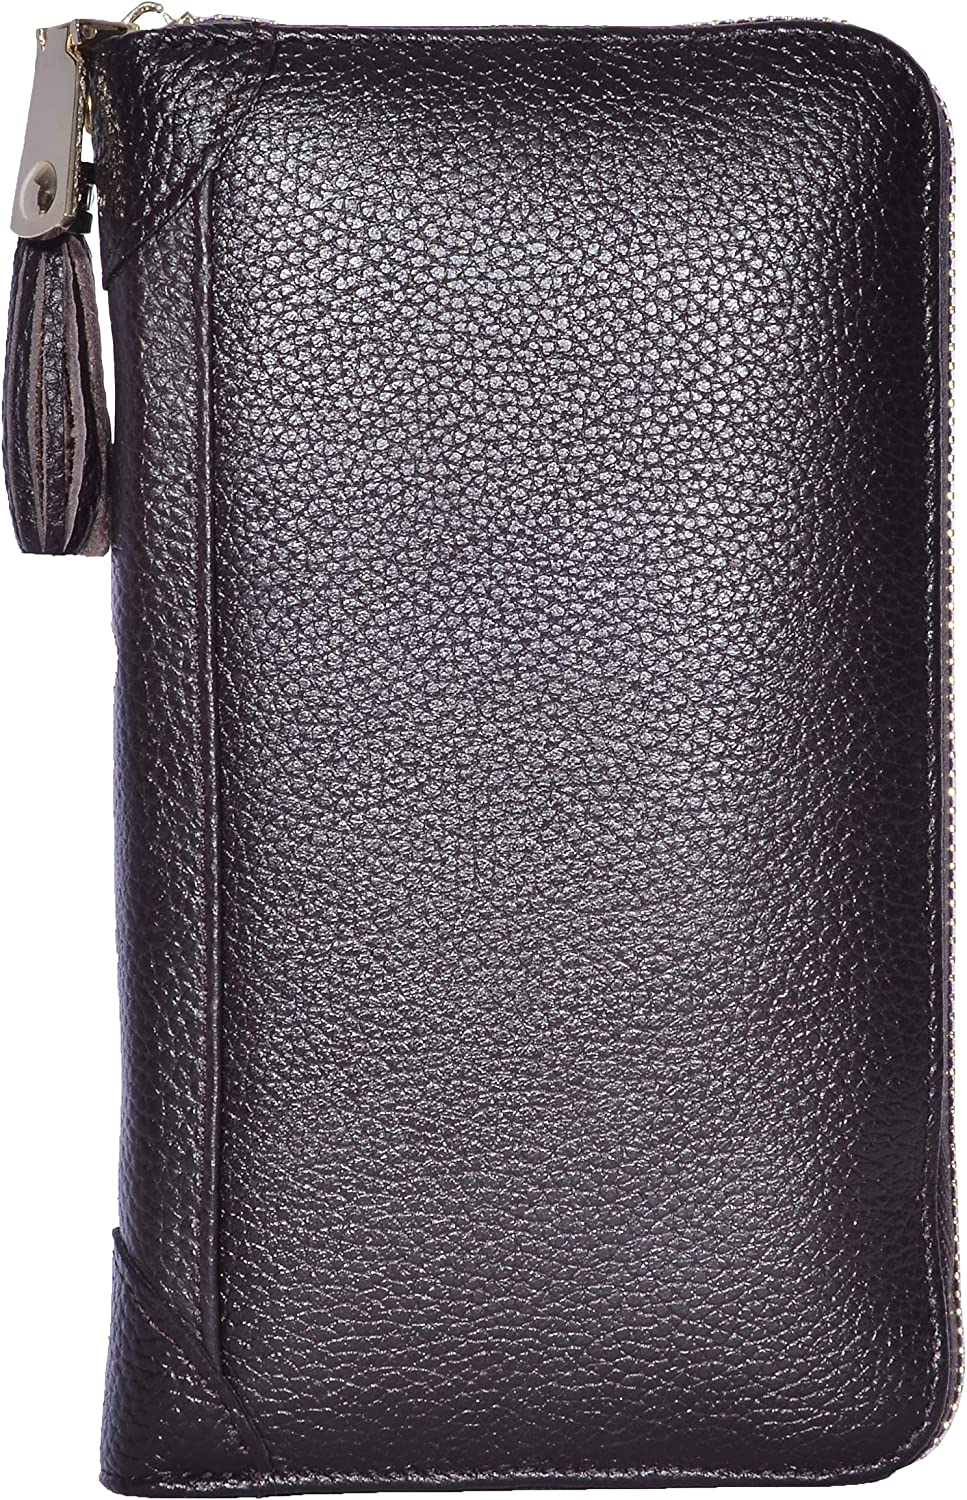 Easyoulife Credit Card Holder Wallet Womens Zipper Leather Case Purse RFID Blocking